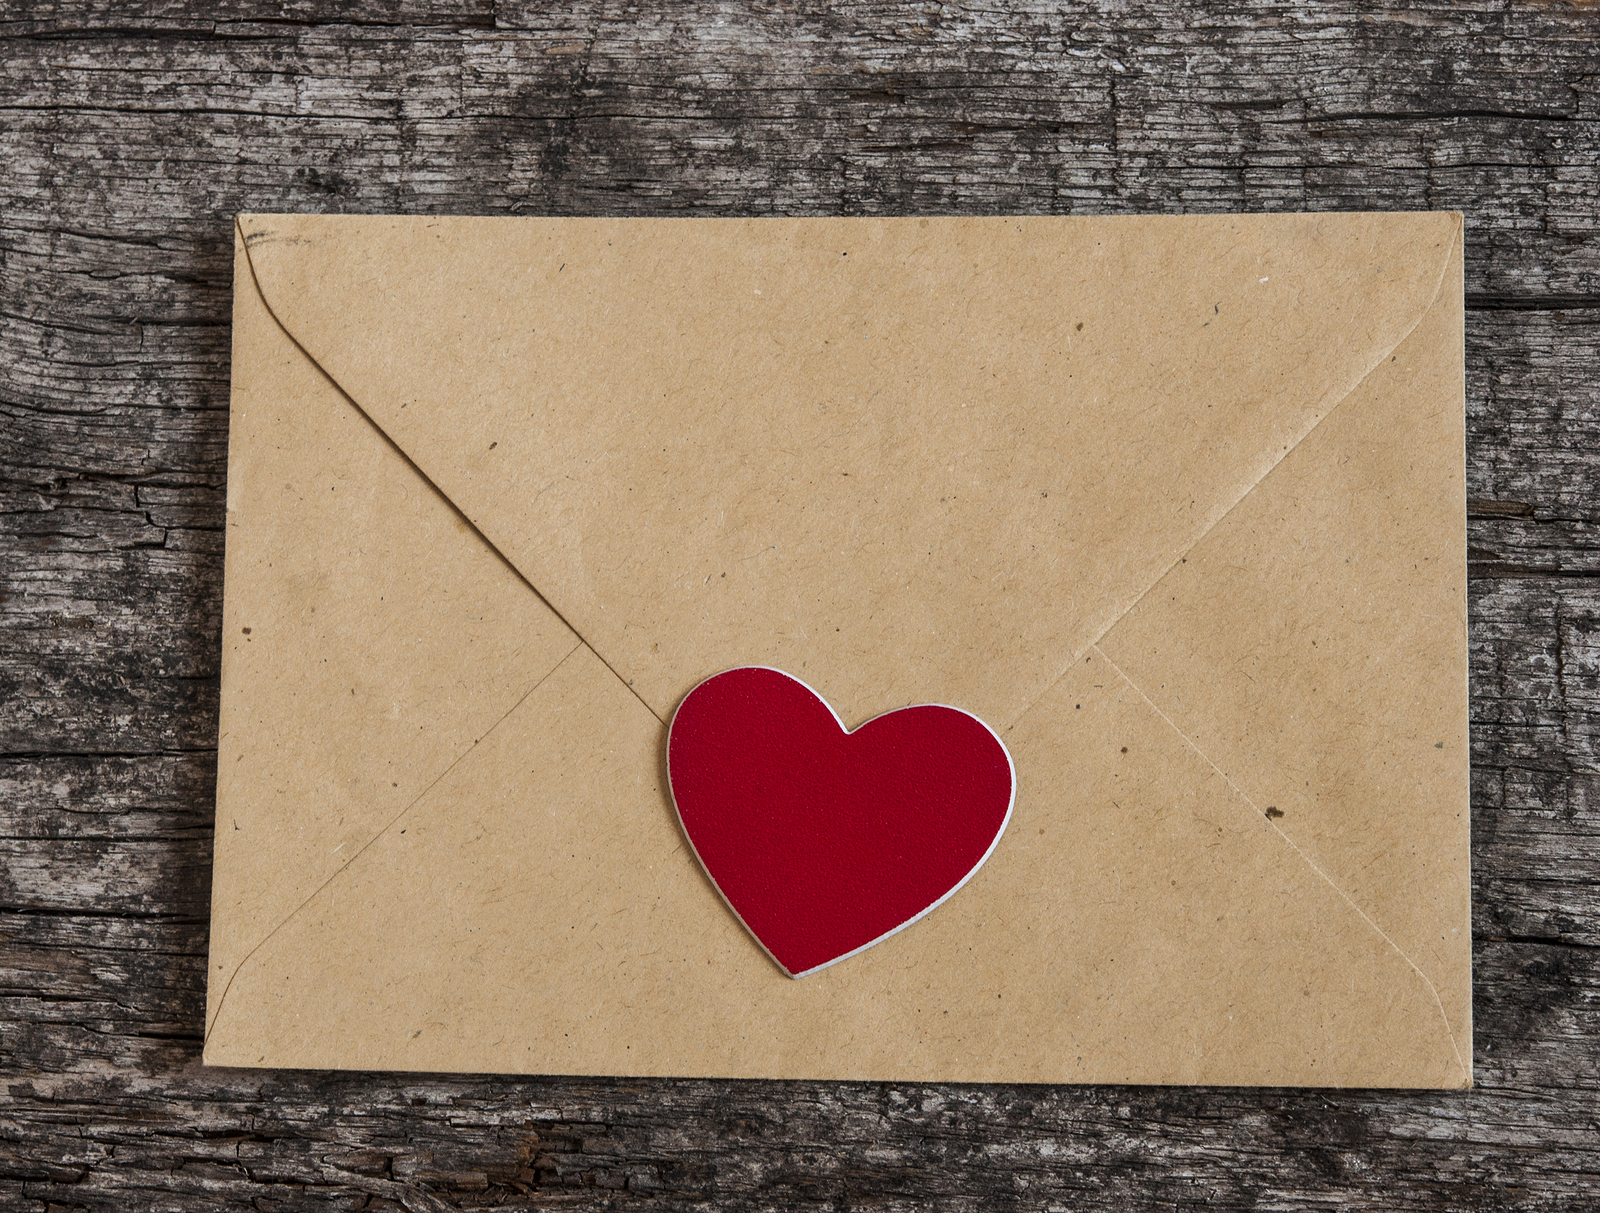 Tearful Love Letter